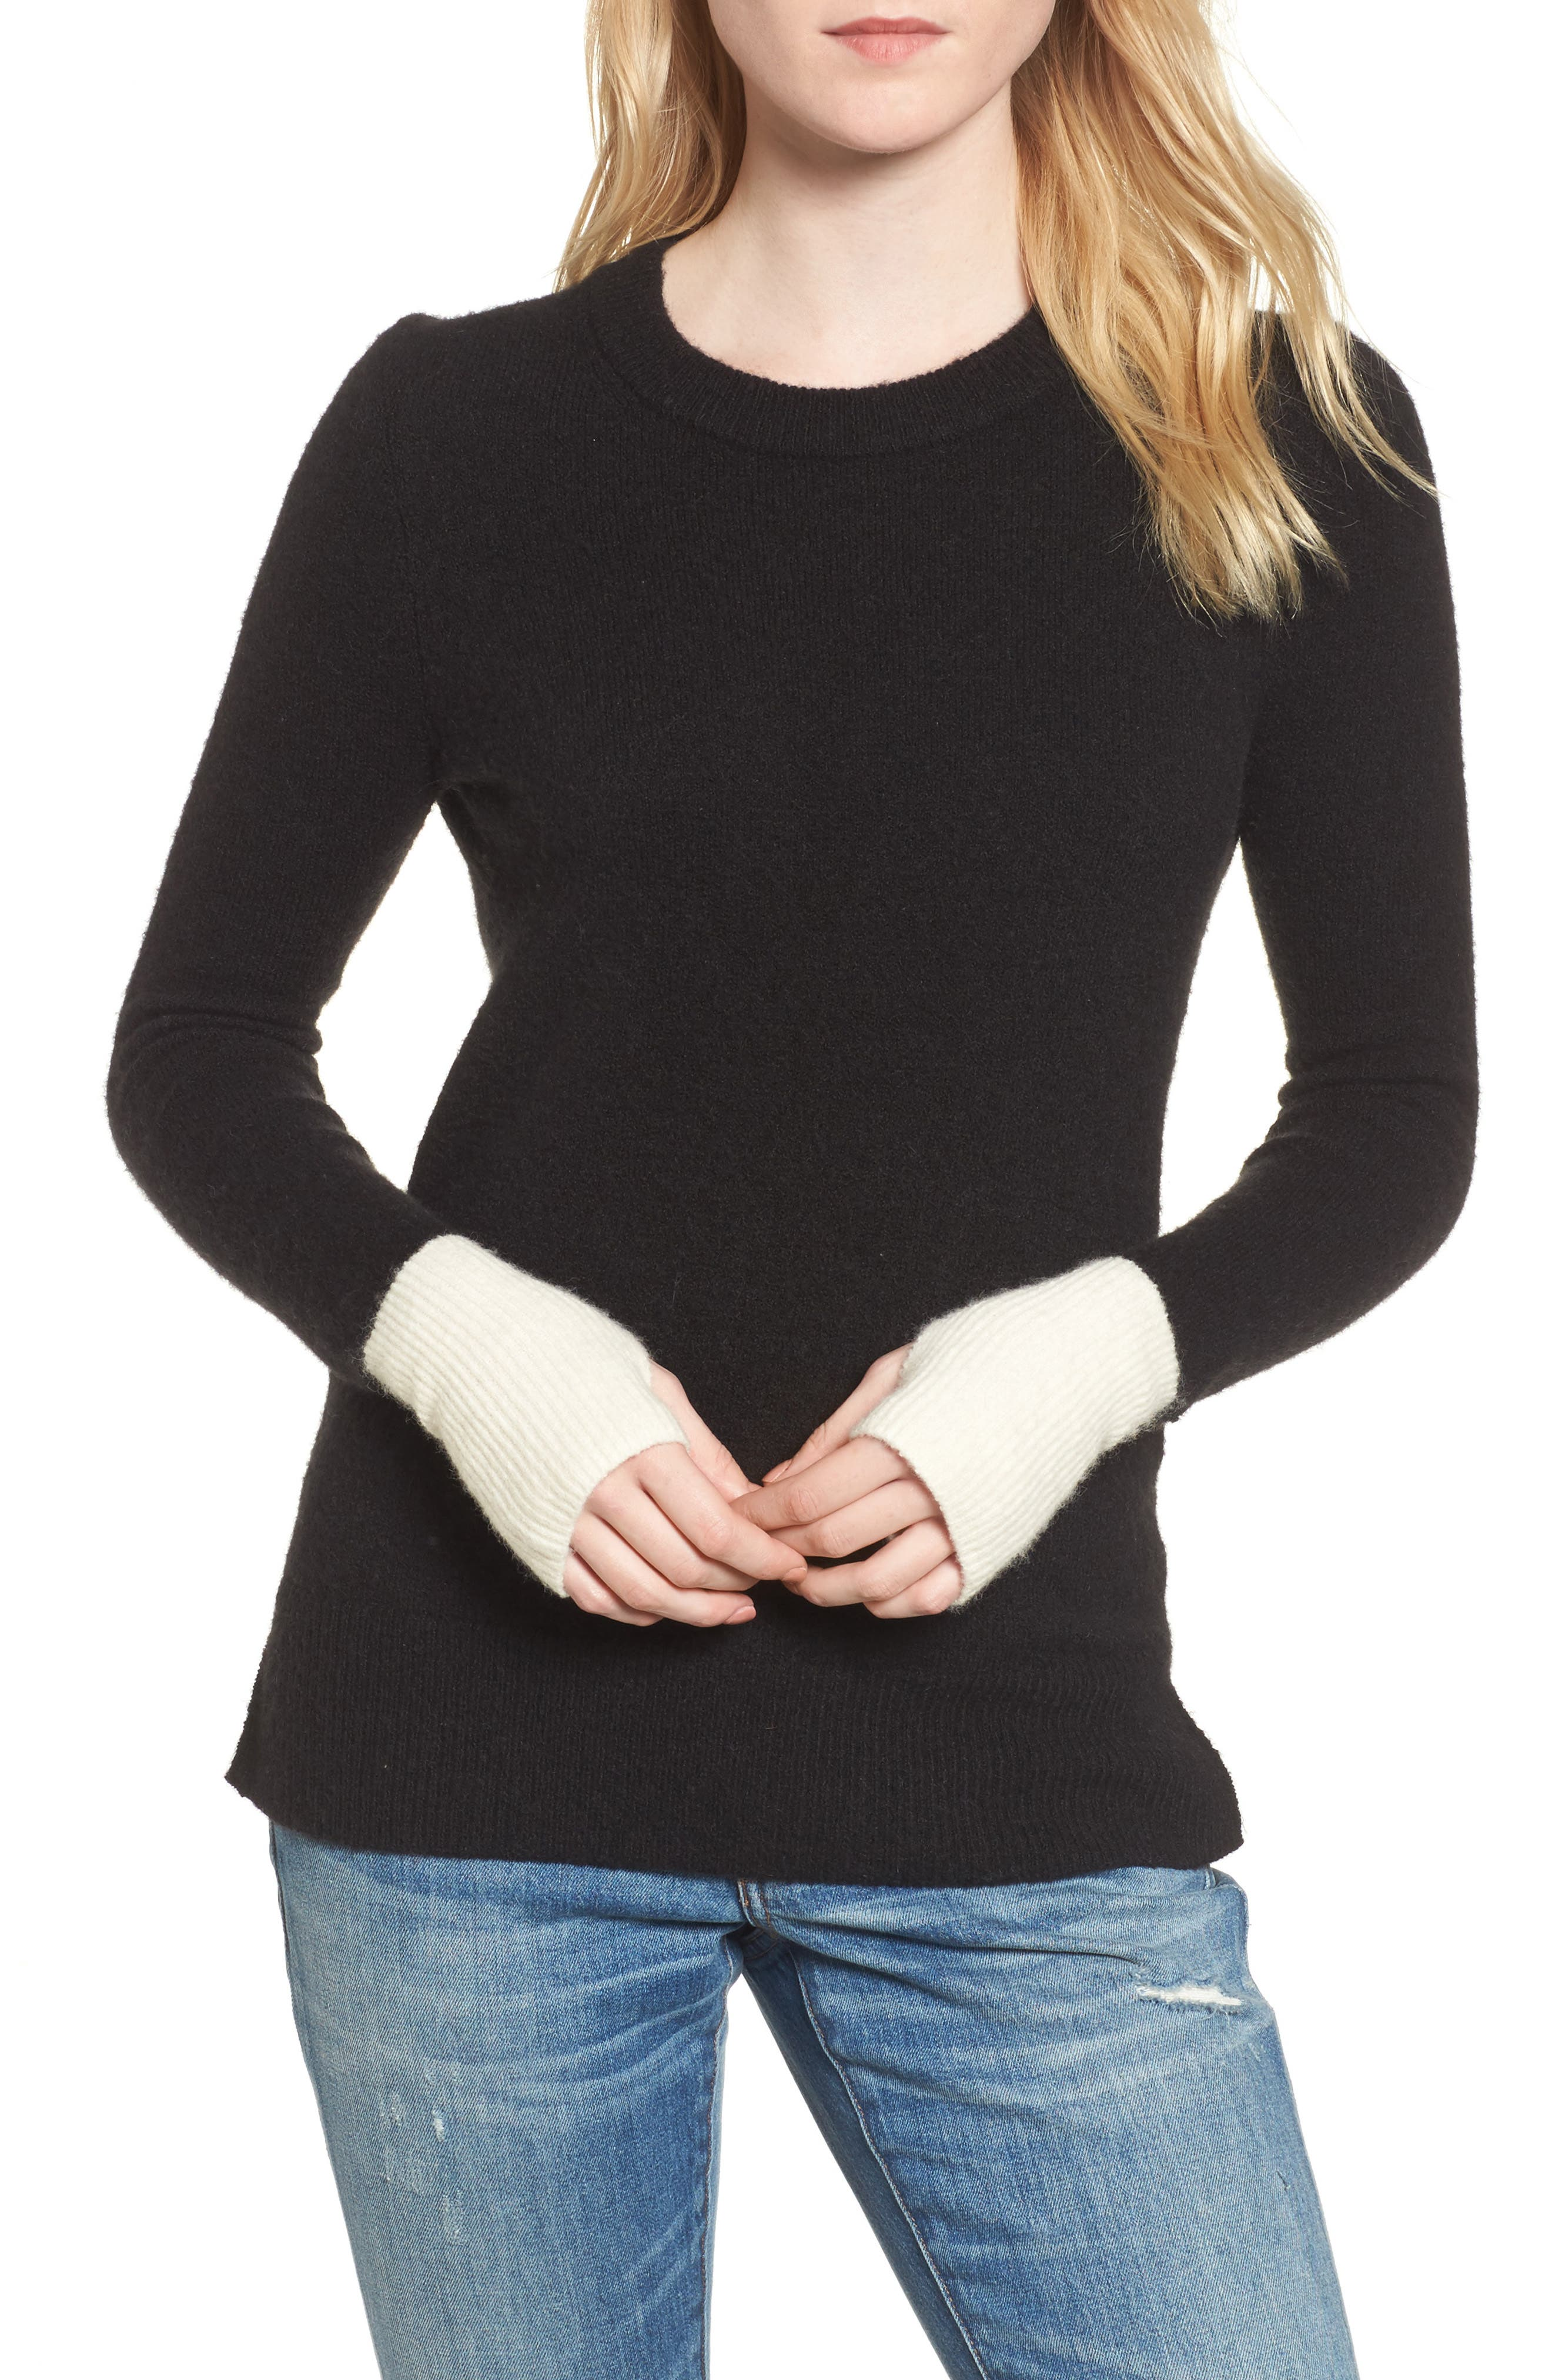 Madewell Fremont Colorblock Pullover Sweater